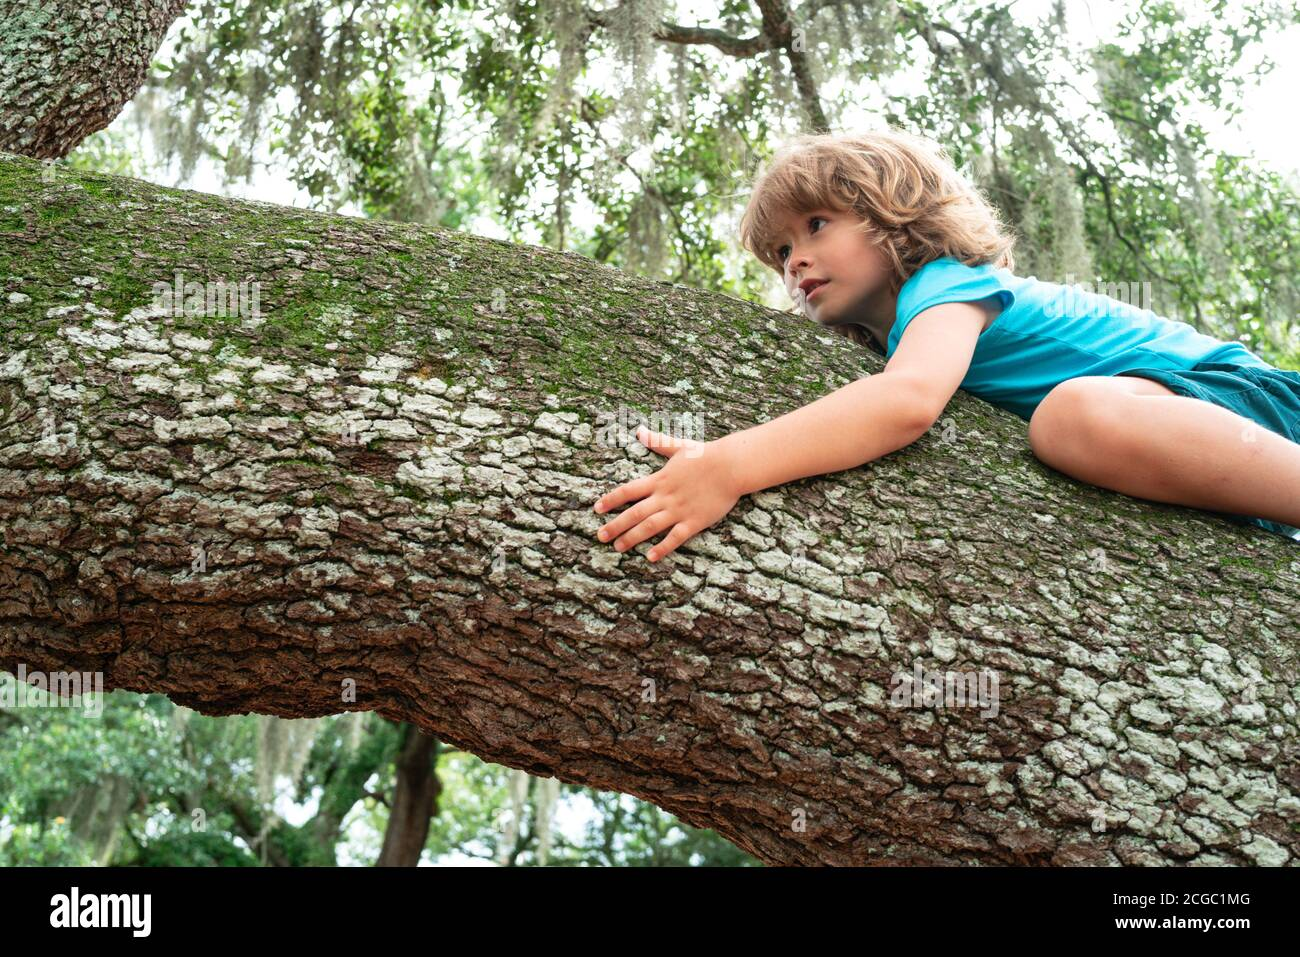 Portrait of a happy Child climbing in a tree in a park. Stock Photo